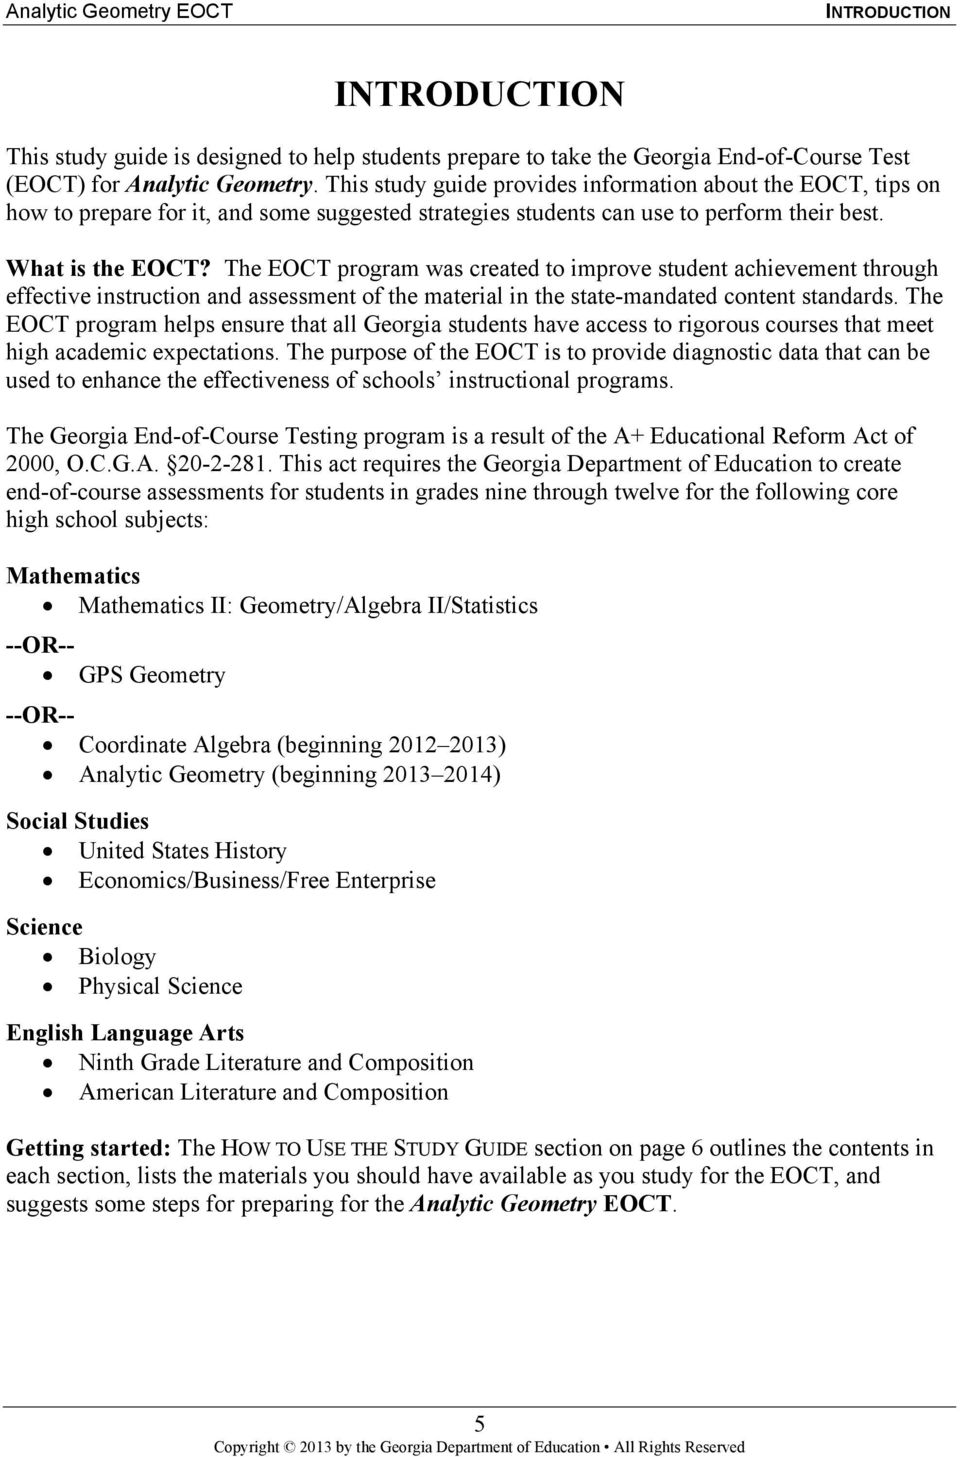 analytic geometry study guide georgia end of course tests pdf rh docplayer net